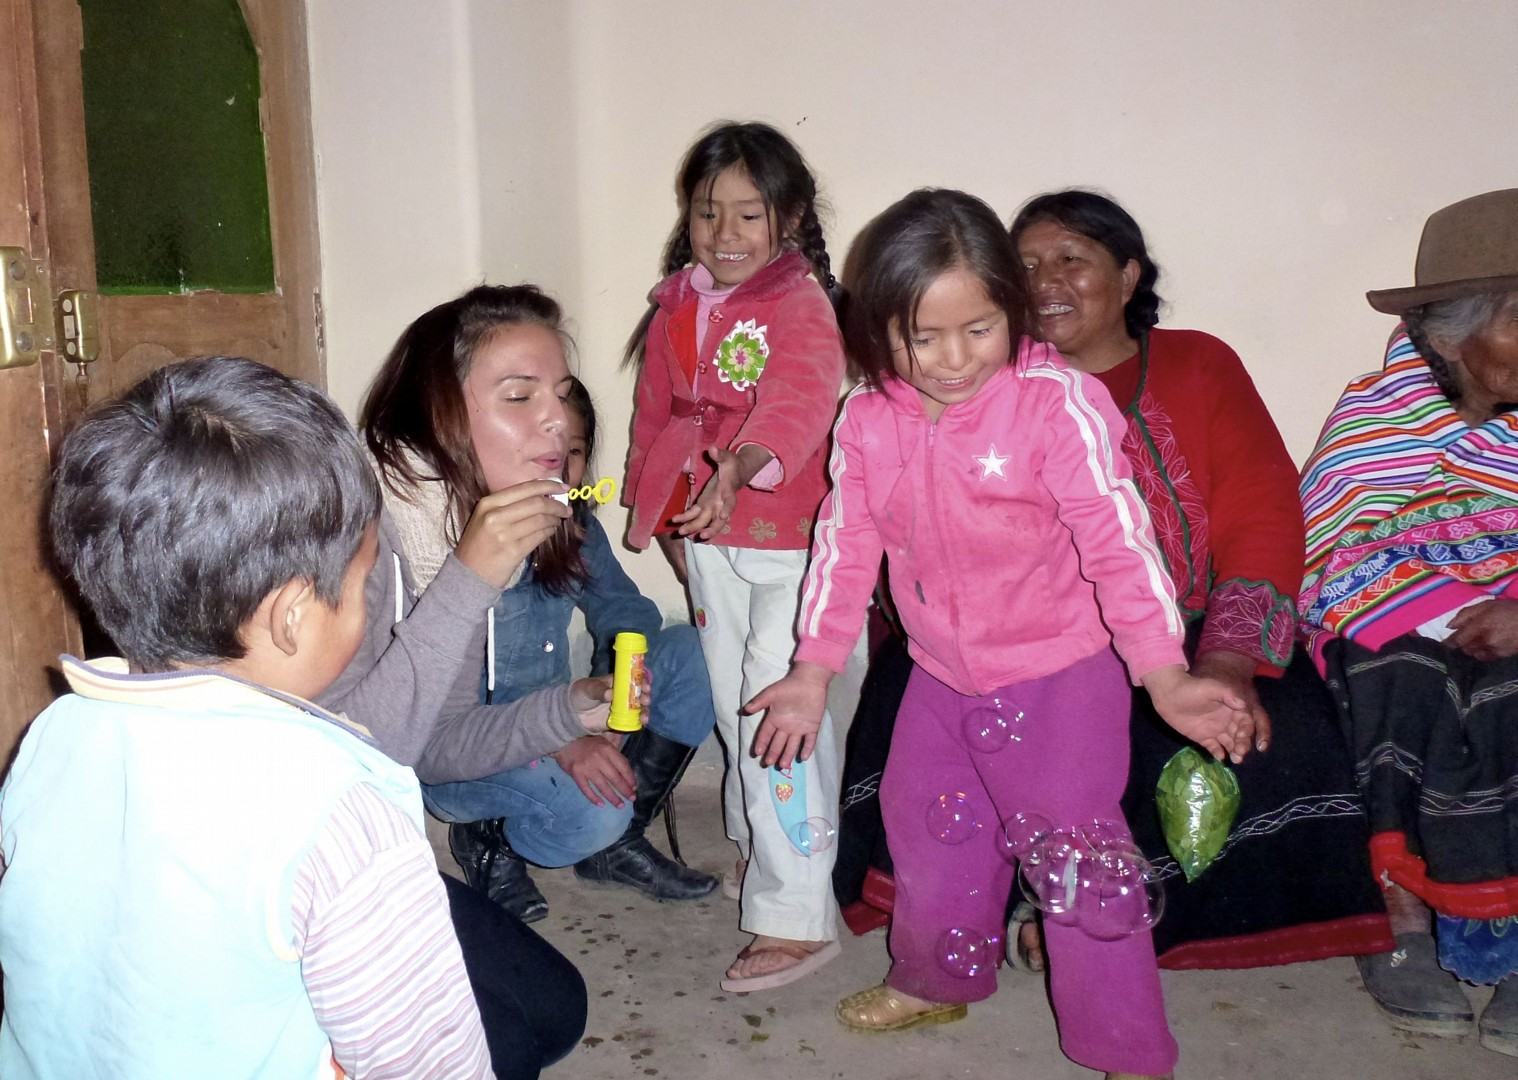 Meeting families.jpg - Inca Trails in Peru - Meet the People Tours